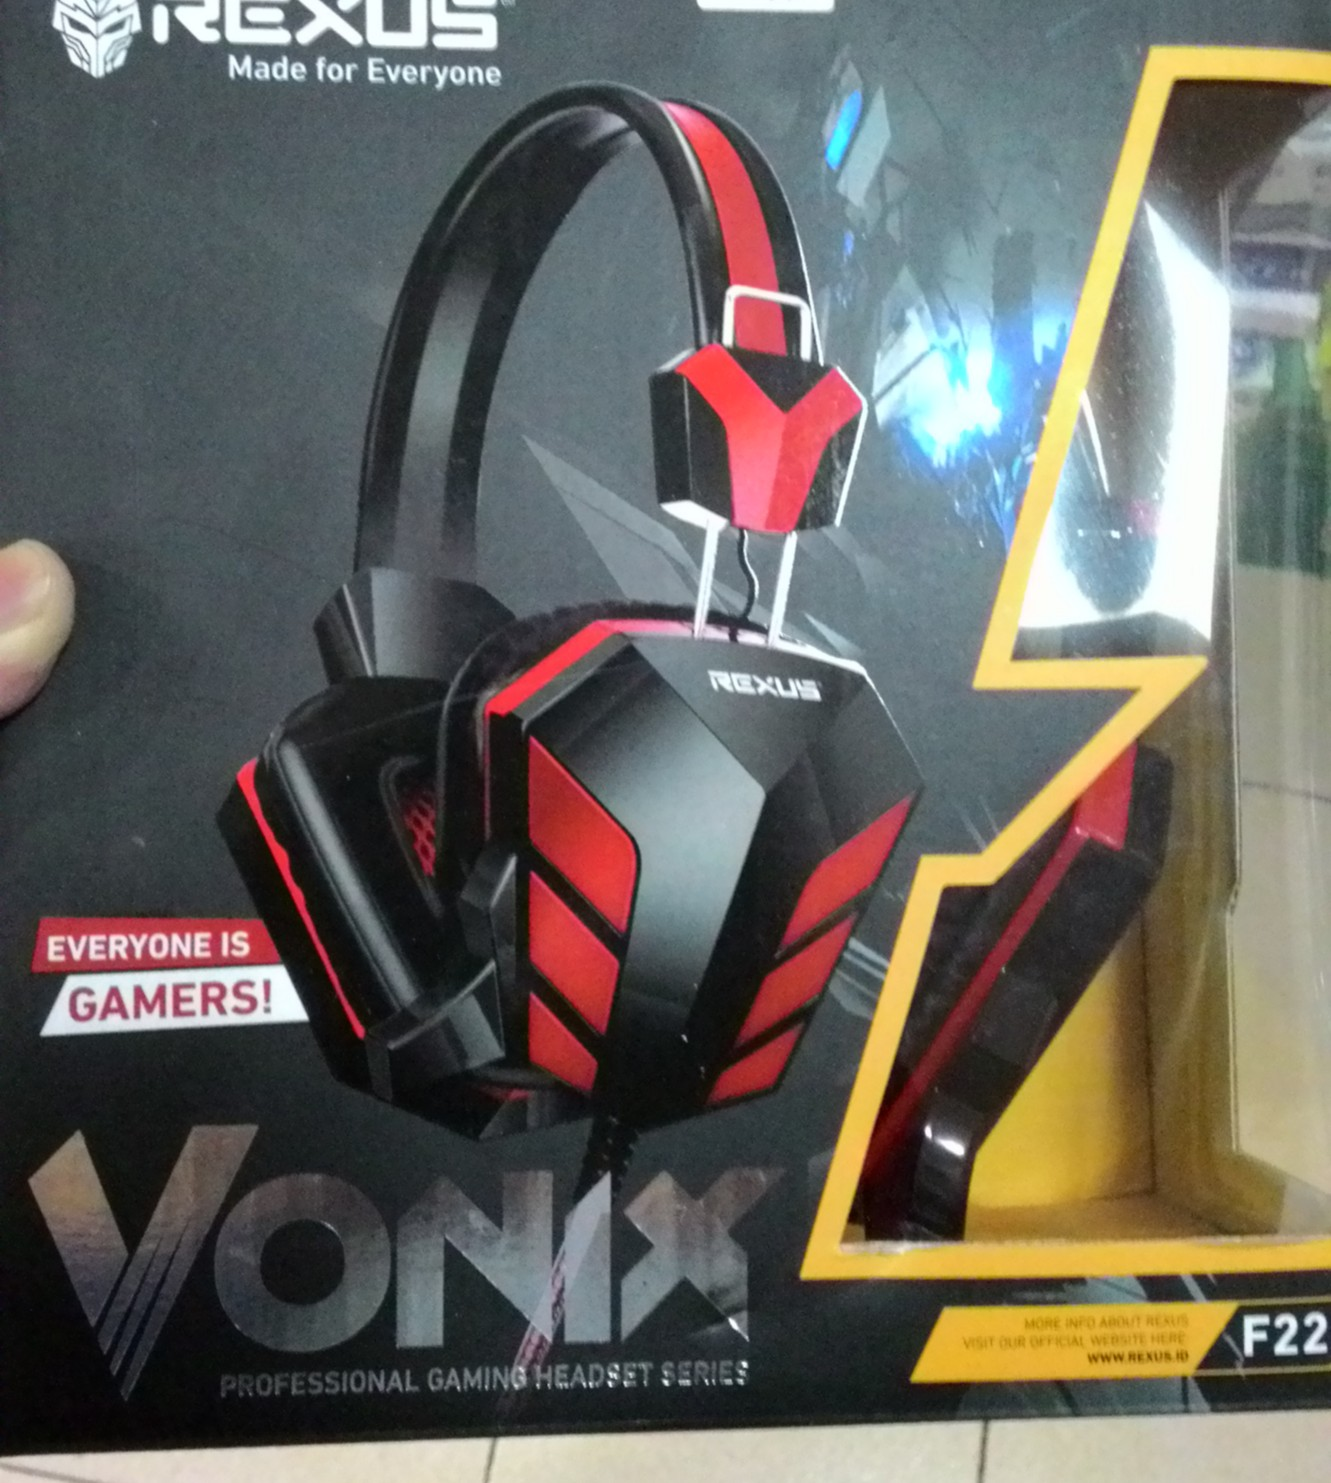 Rexus Headset Gaming F 22 Merah Daftar Update Harga Terbaru Indonesia F22 Headphone Source Jual